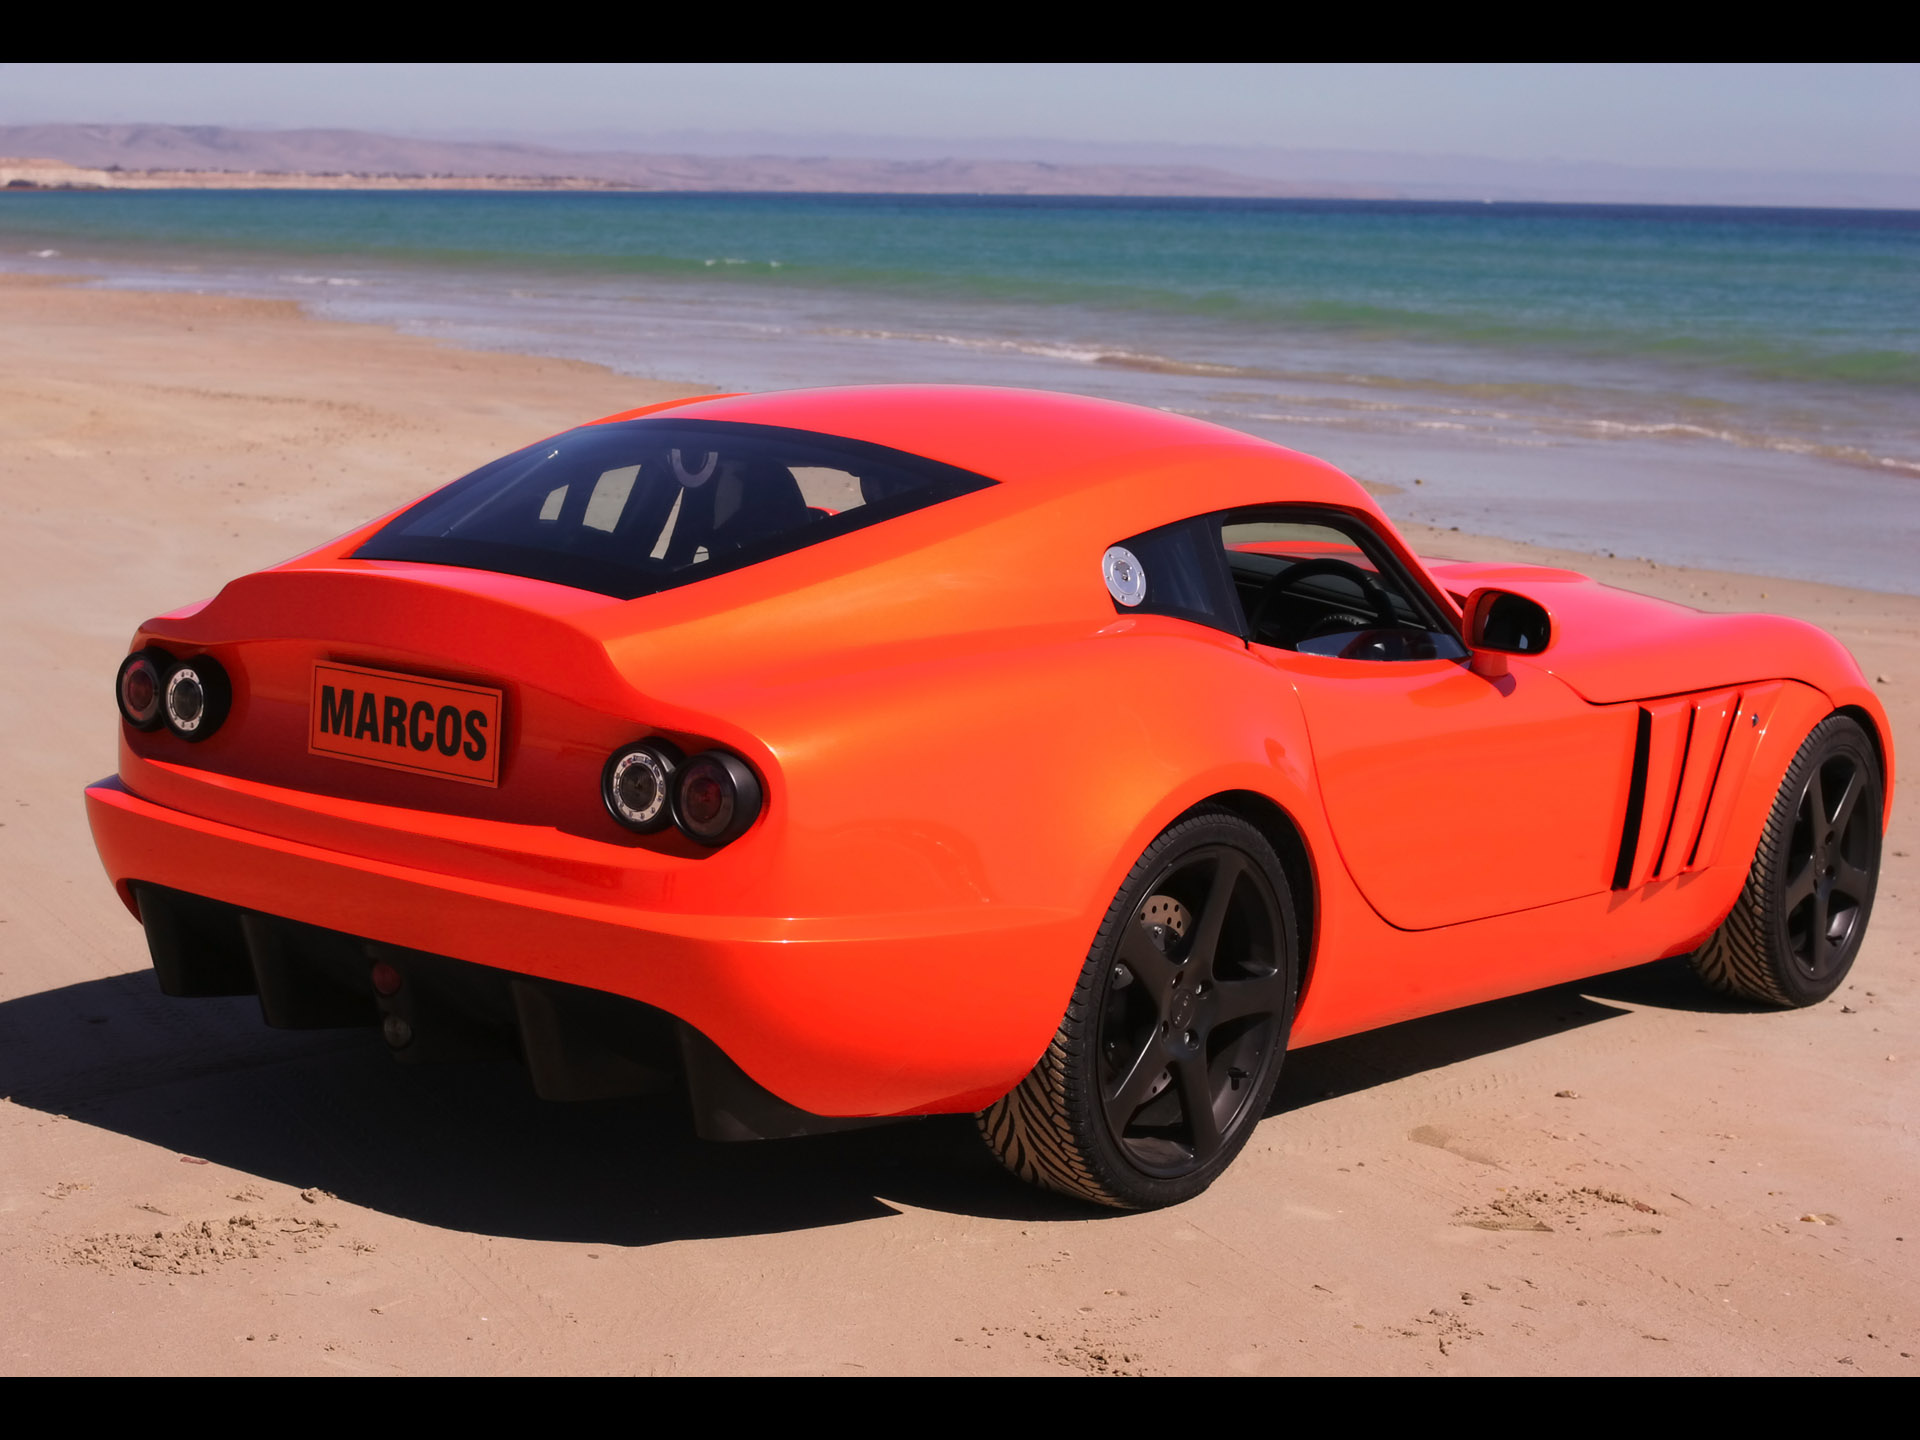 Marcos Tso Gt Photos Photogallery With 10 Pics Carsbase Com